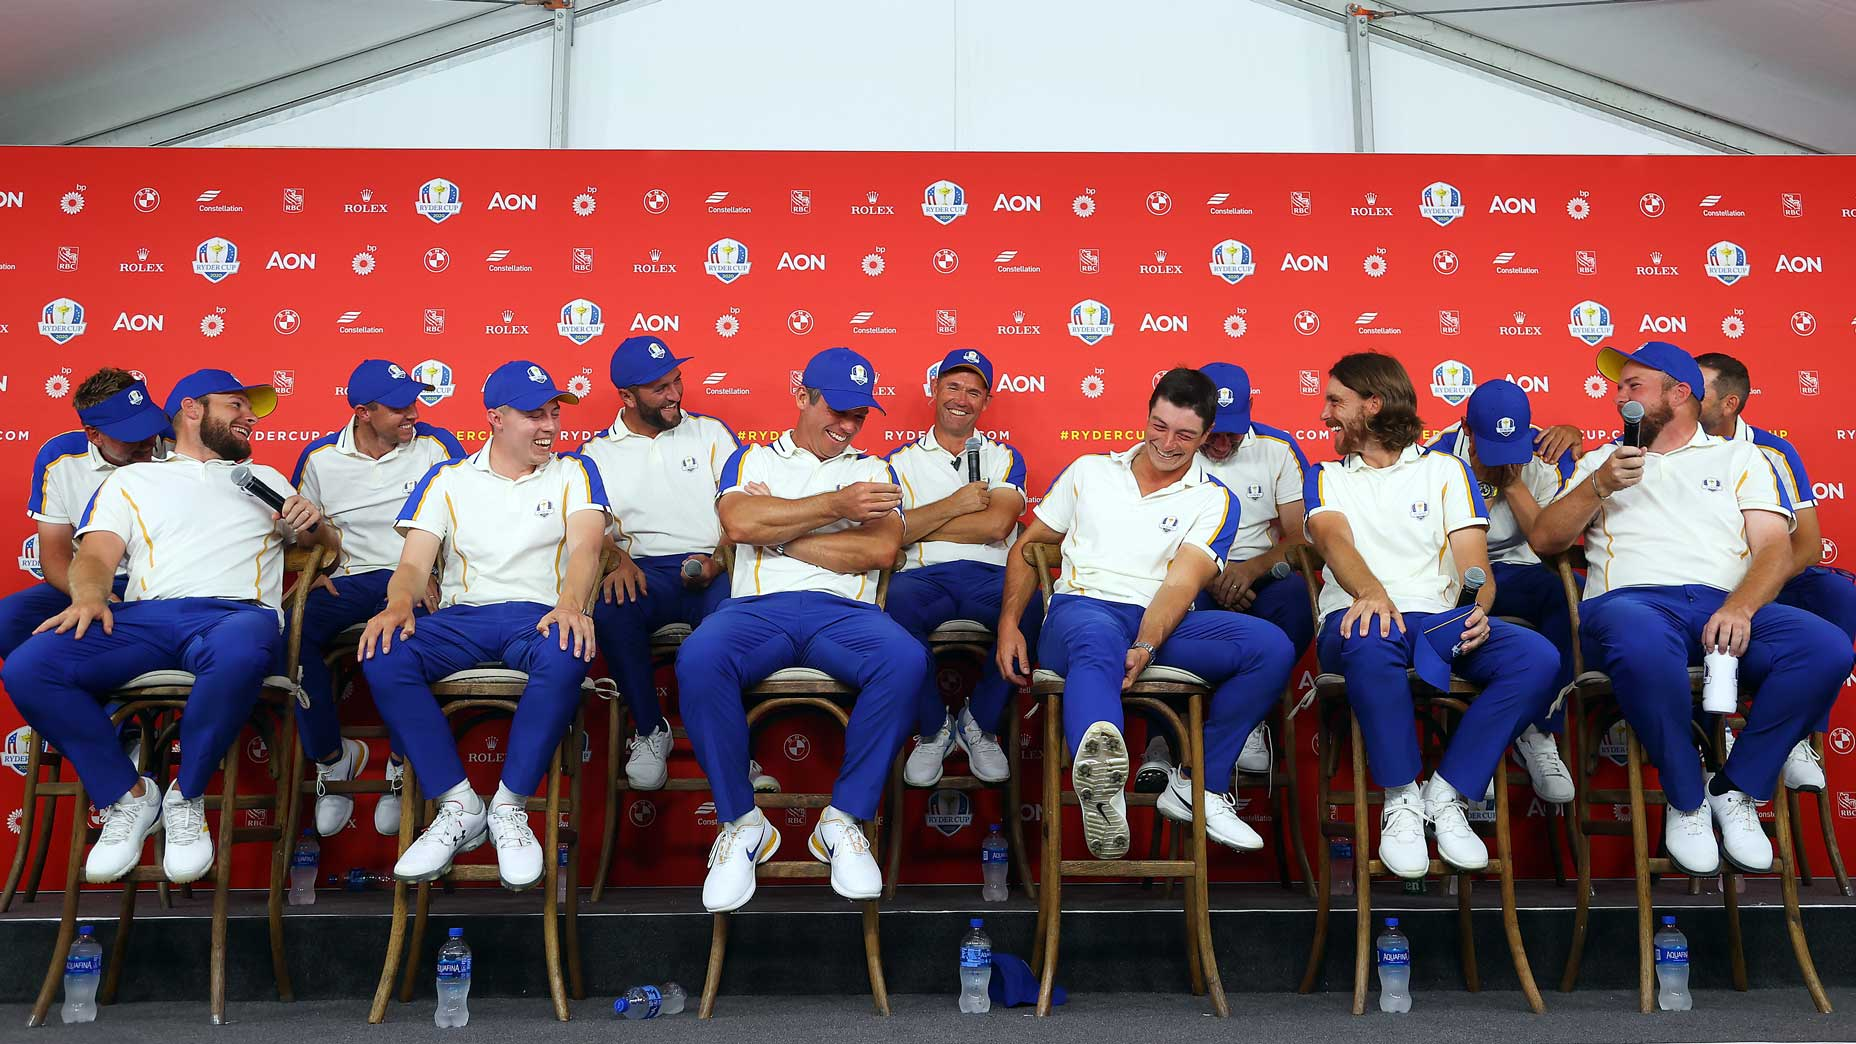 How an emotional European team watched the Ryder Cup slip ...